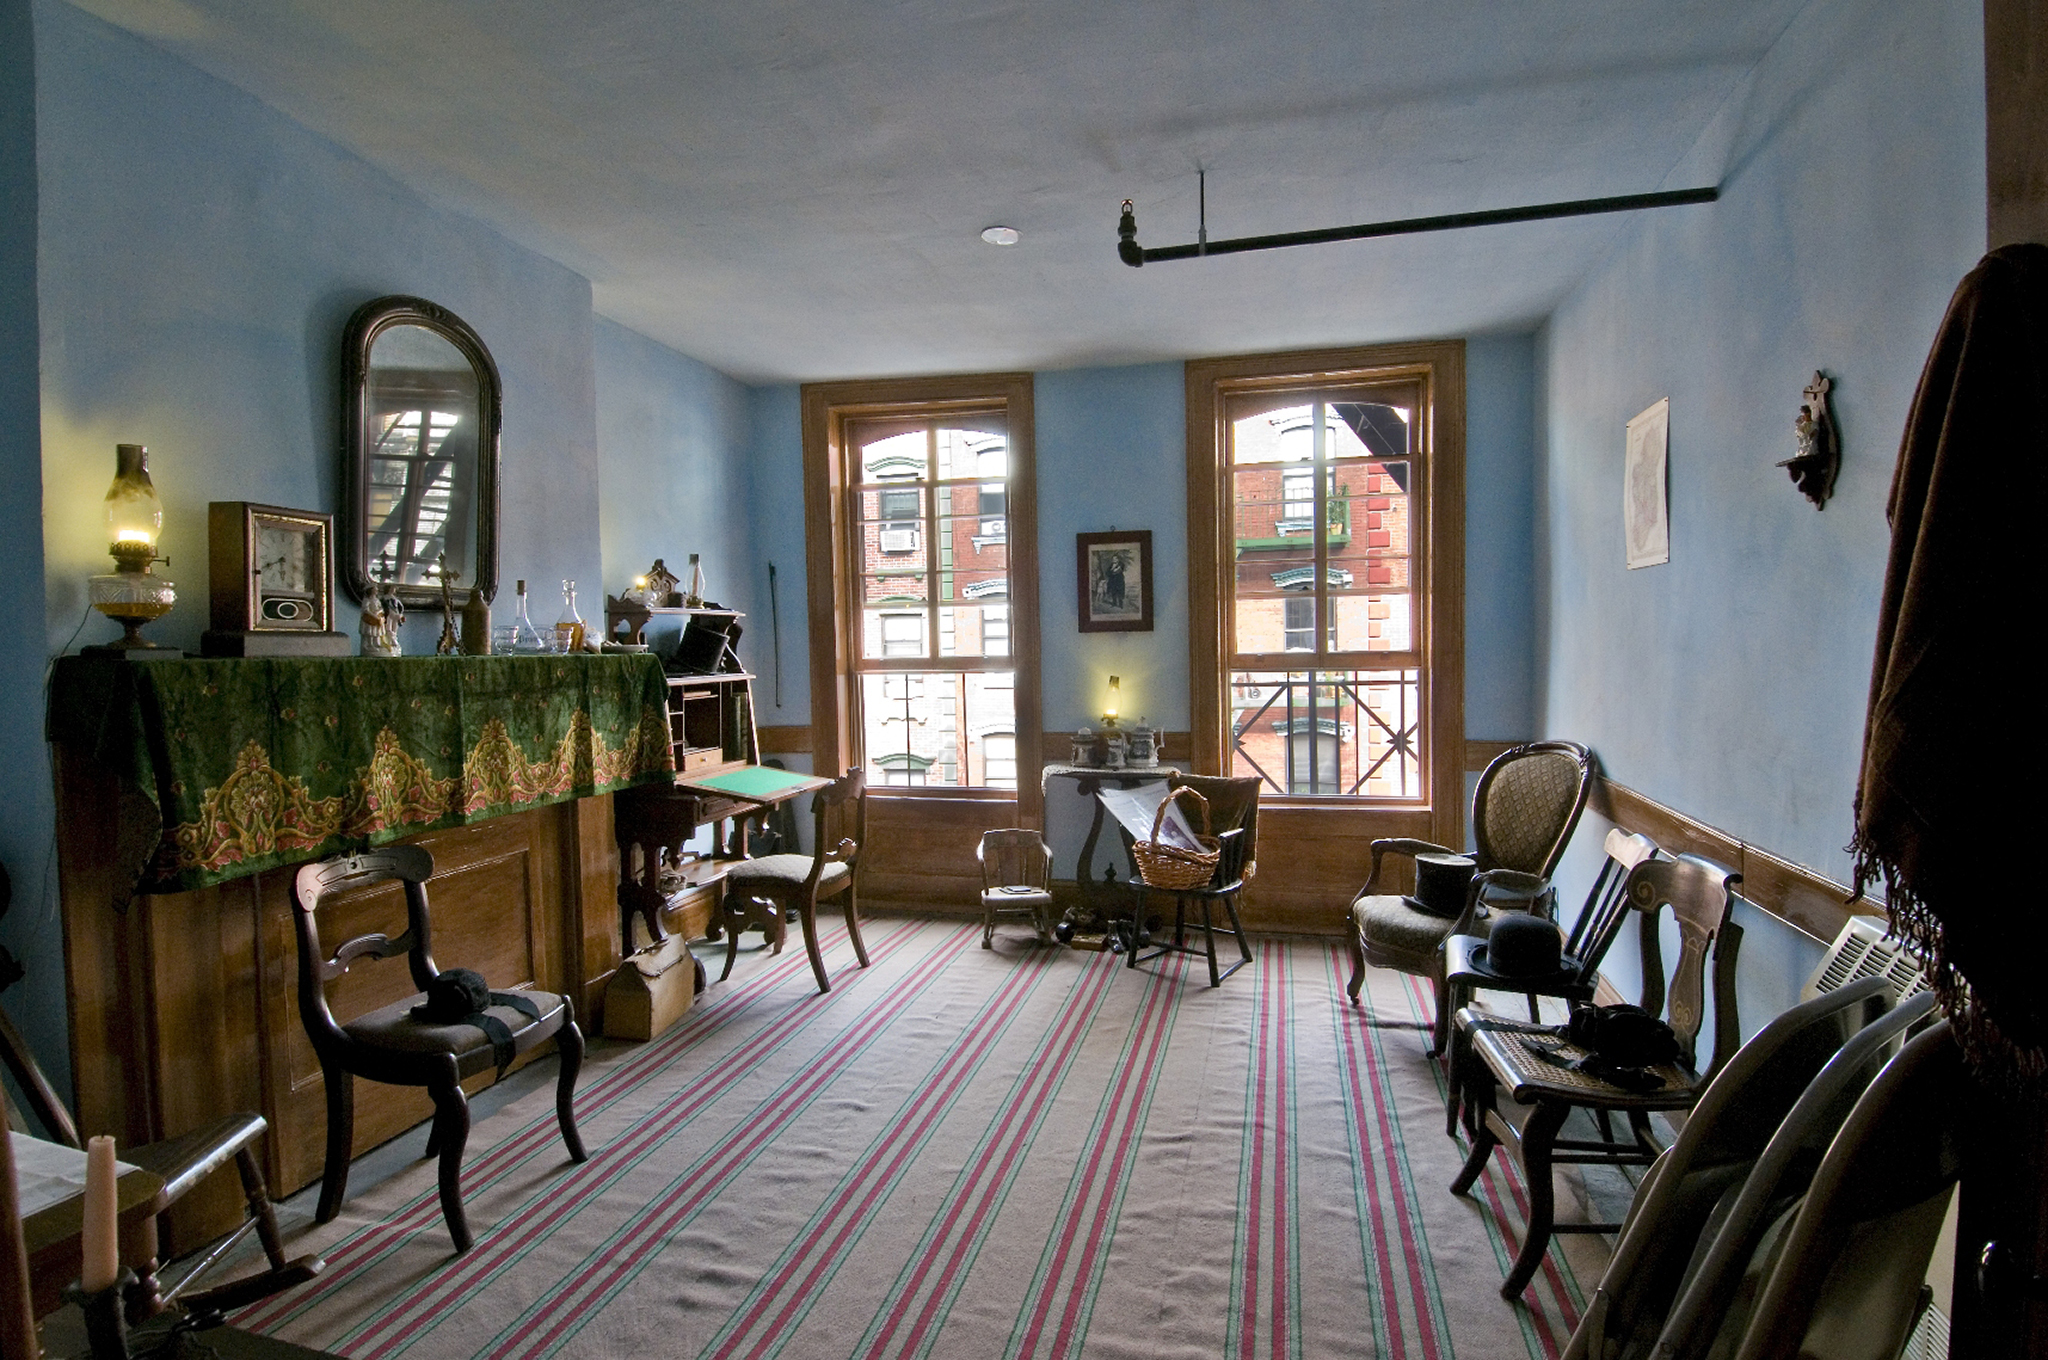 Go back in time at the Tenement Museum